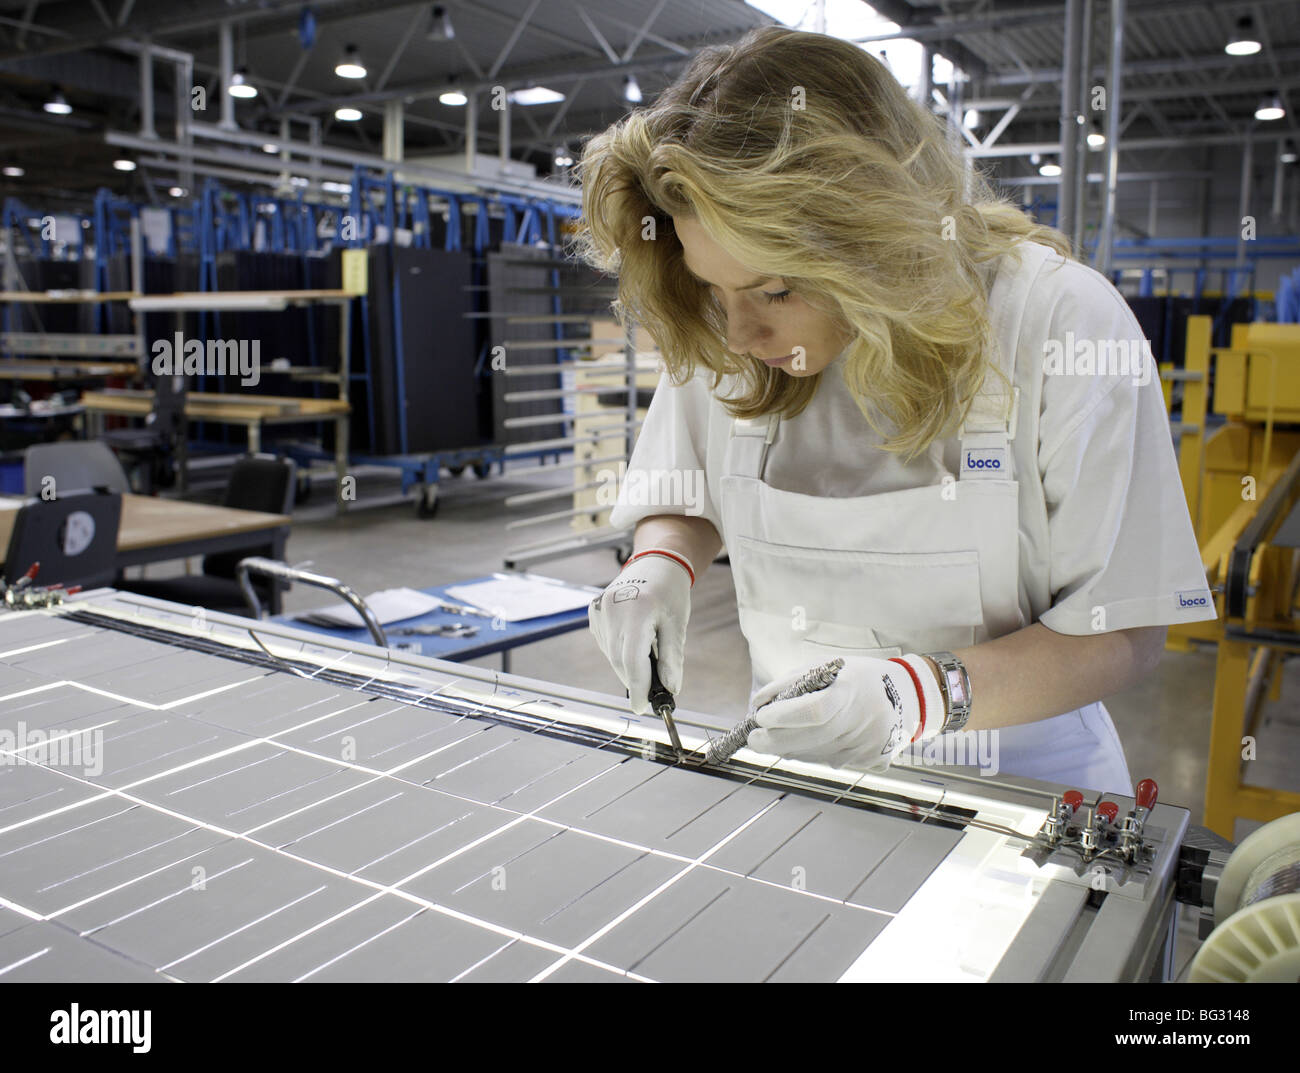 Scheuten Solar Technology GmbH . Gelsenkirchen , Germany . - Stock Image